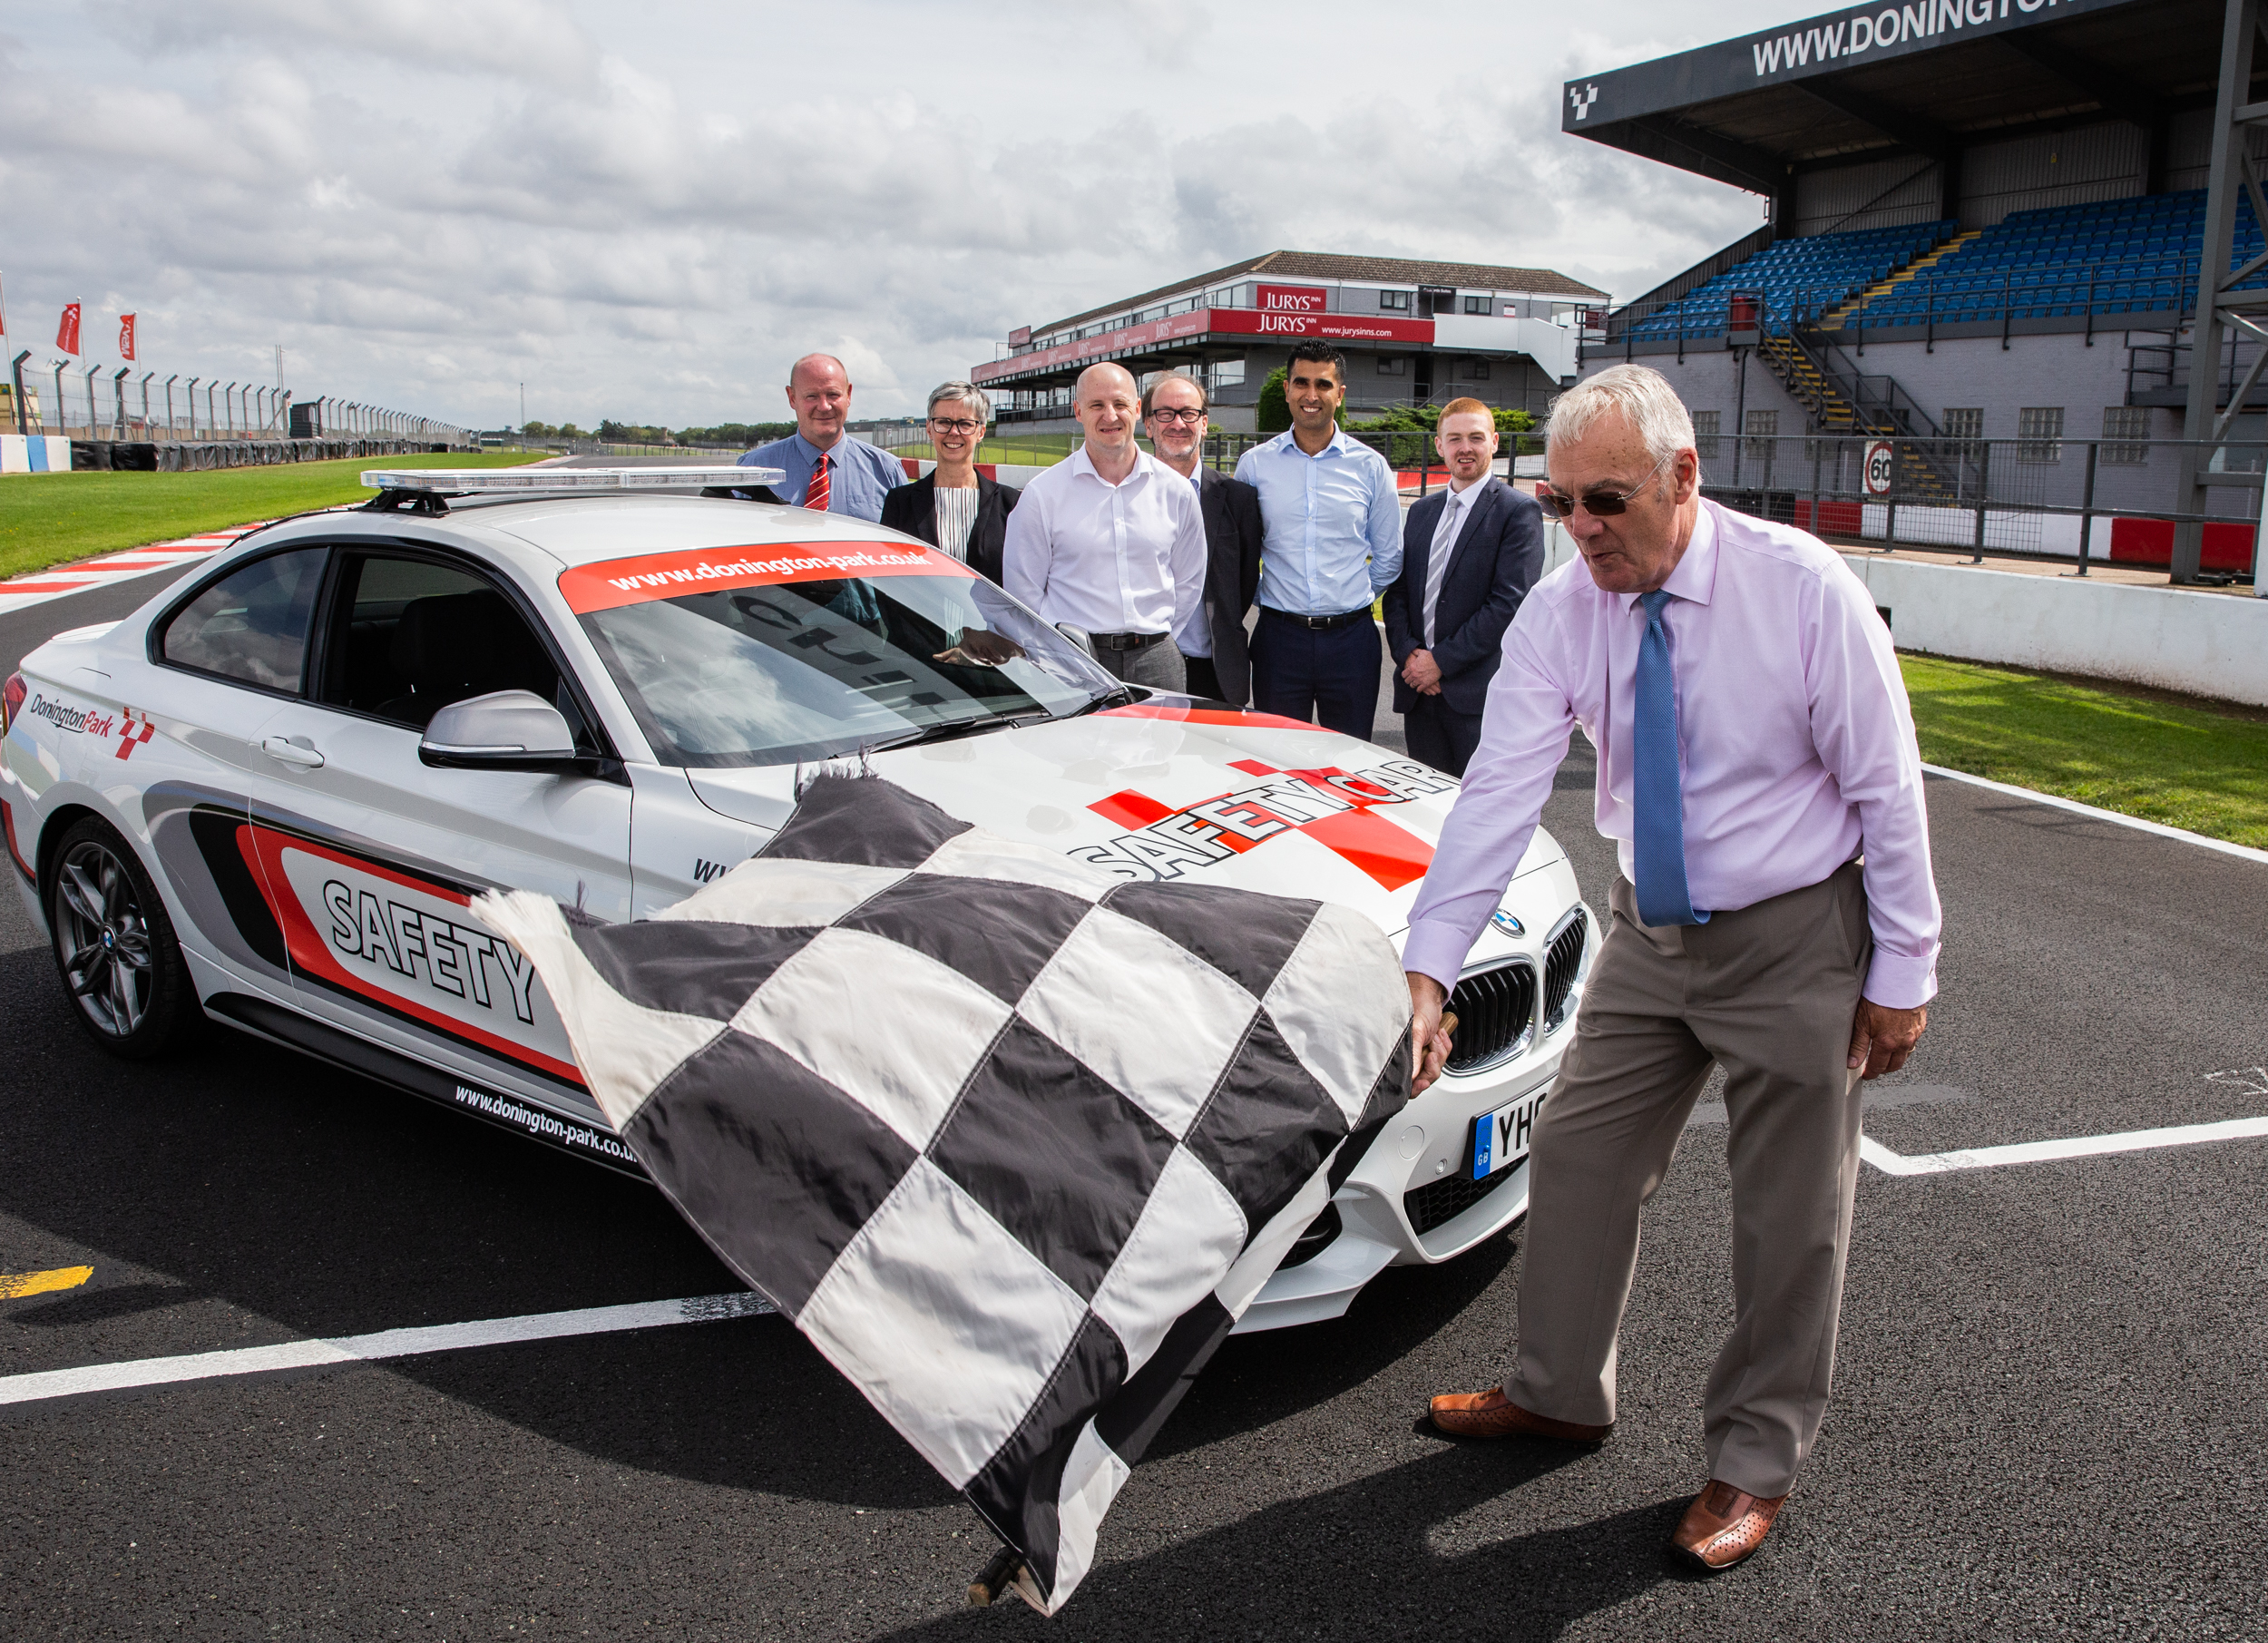 safety car with members of BT, Openreach and the DCMS standing on racetrack and one man holding chequered flag in the wind